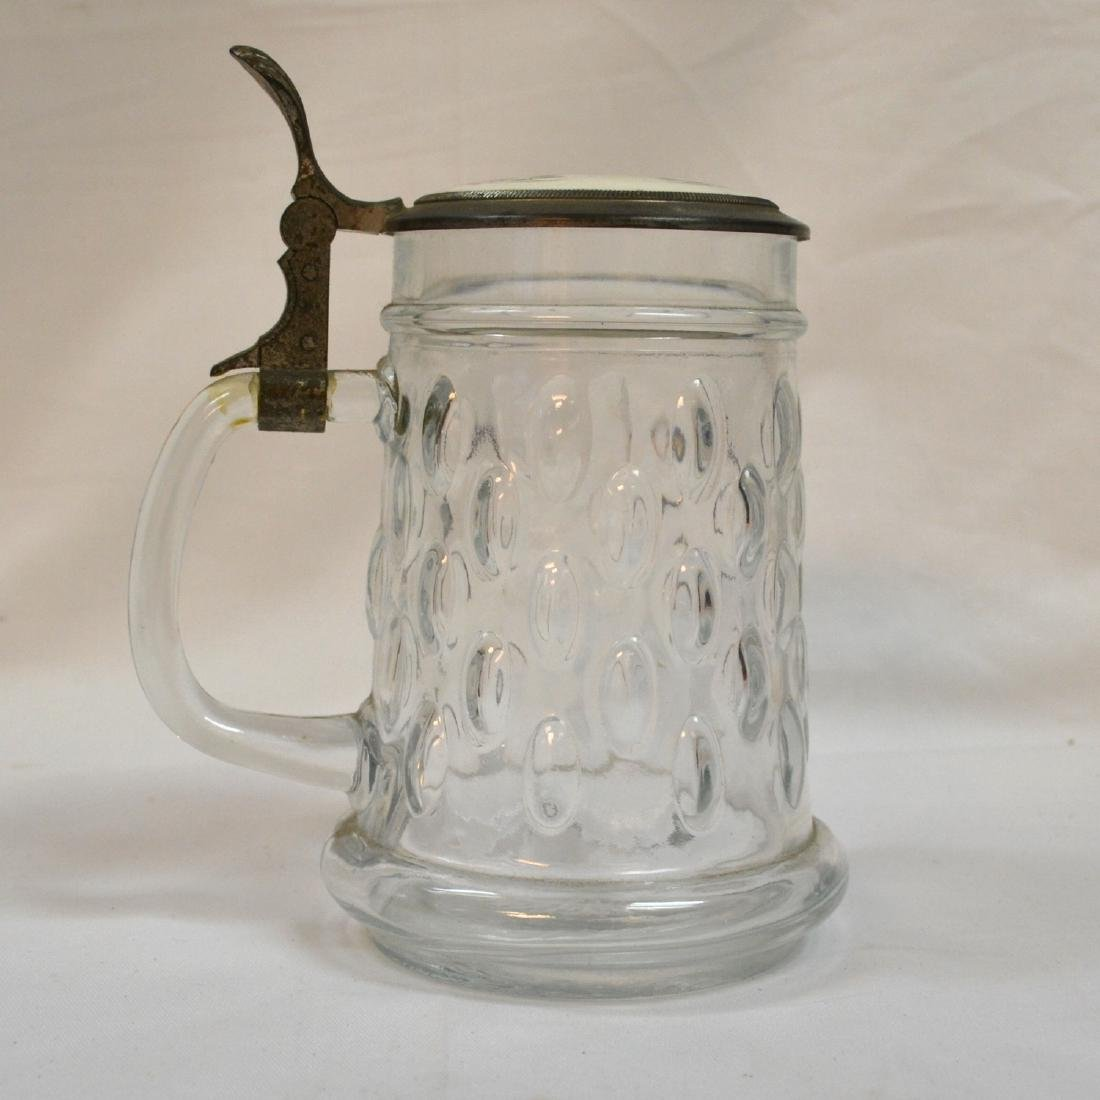 Antique German Cut Glass Beer Stein Hand-painted - 3